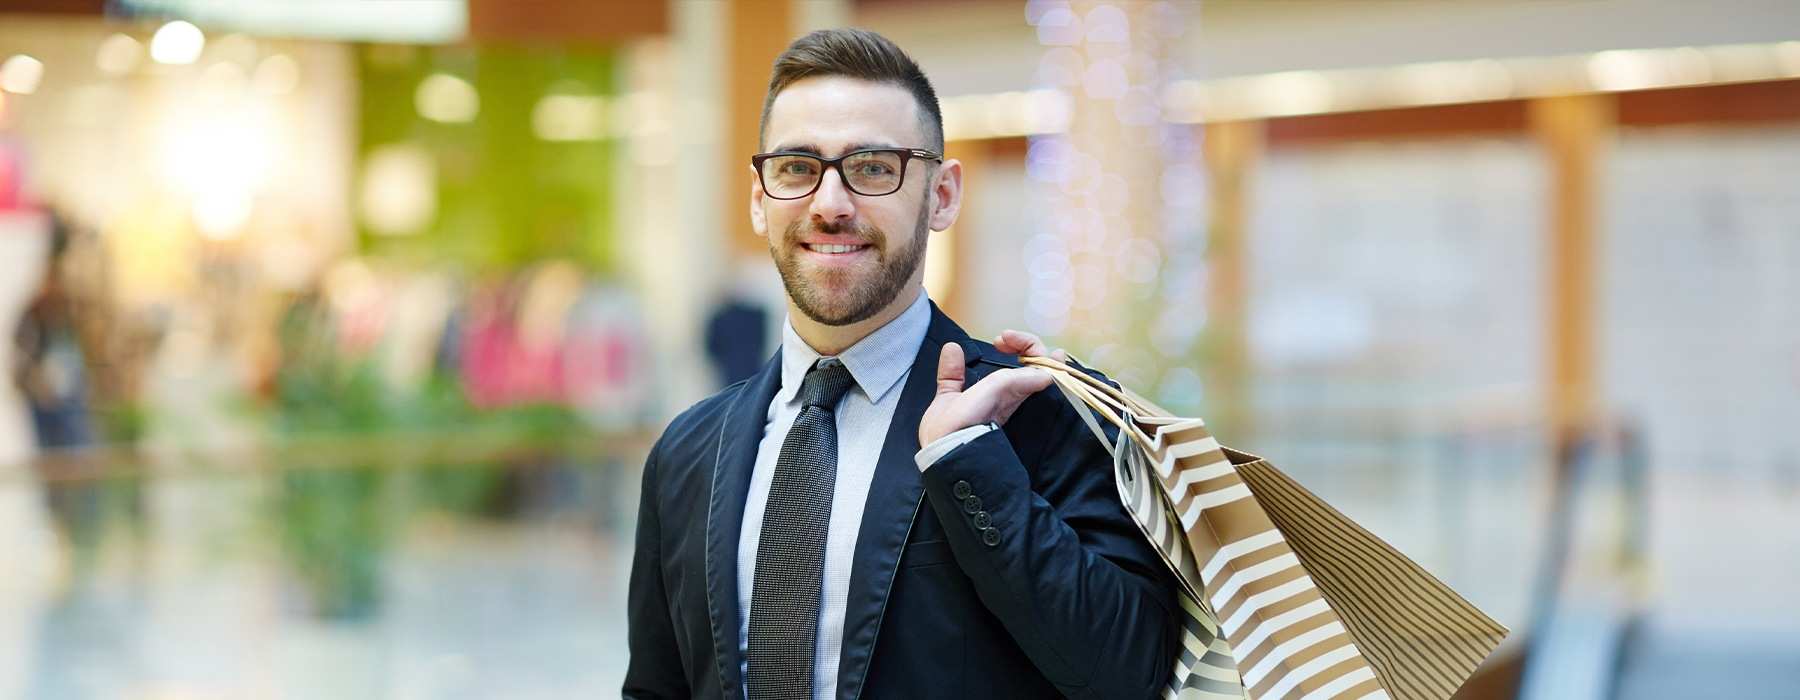 Man smiling holding a shopping bag